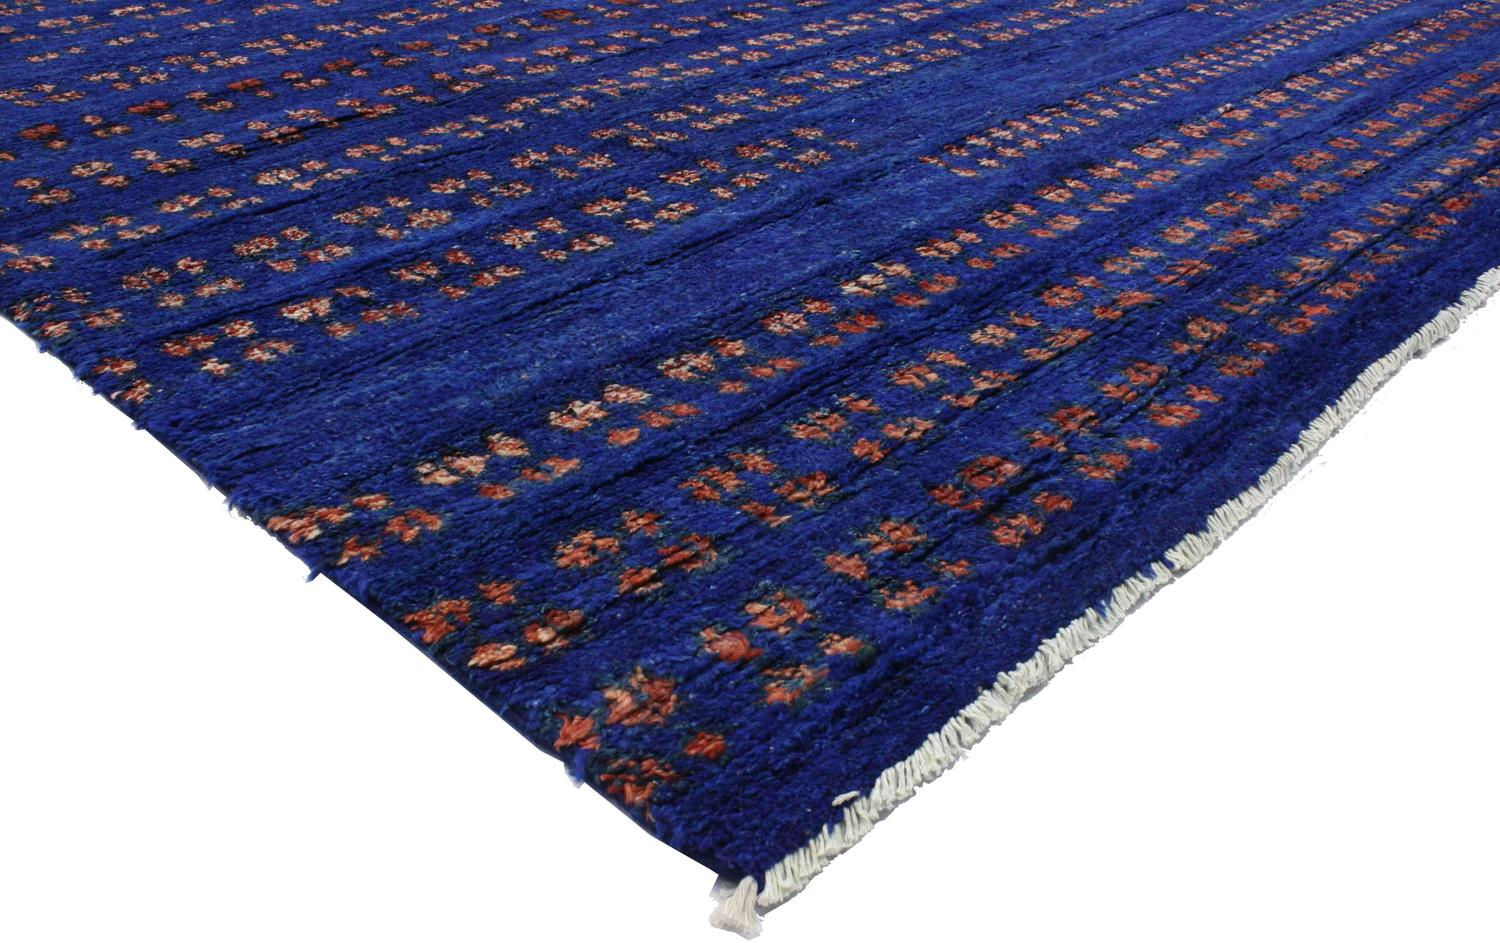 Contemporary Moroccan Style Area Rug In Cobalt Blue At 1stdibs